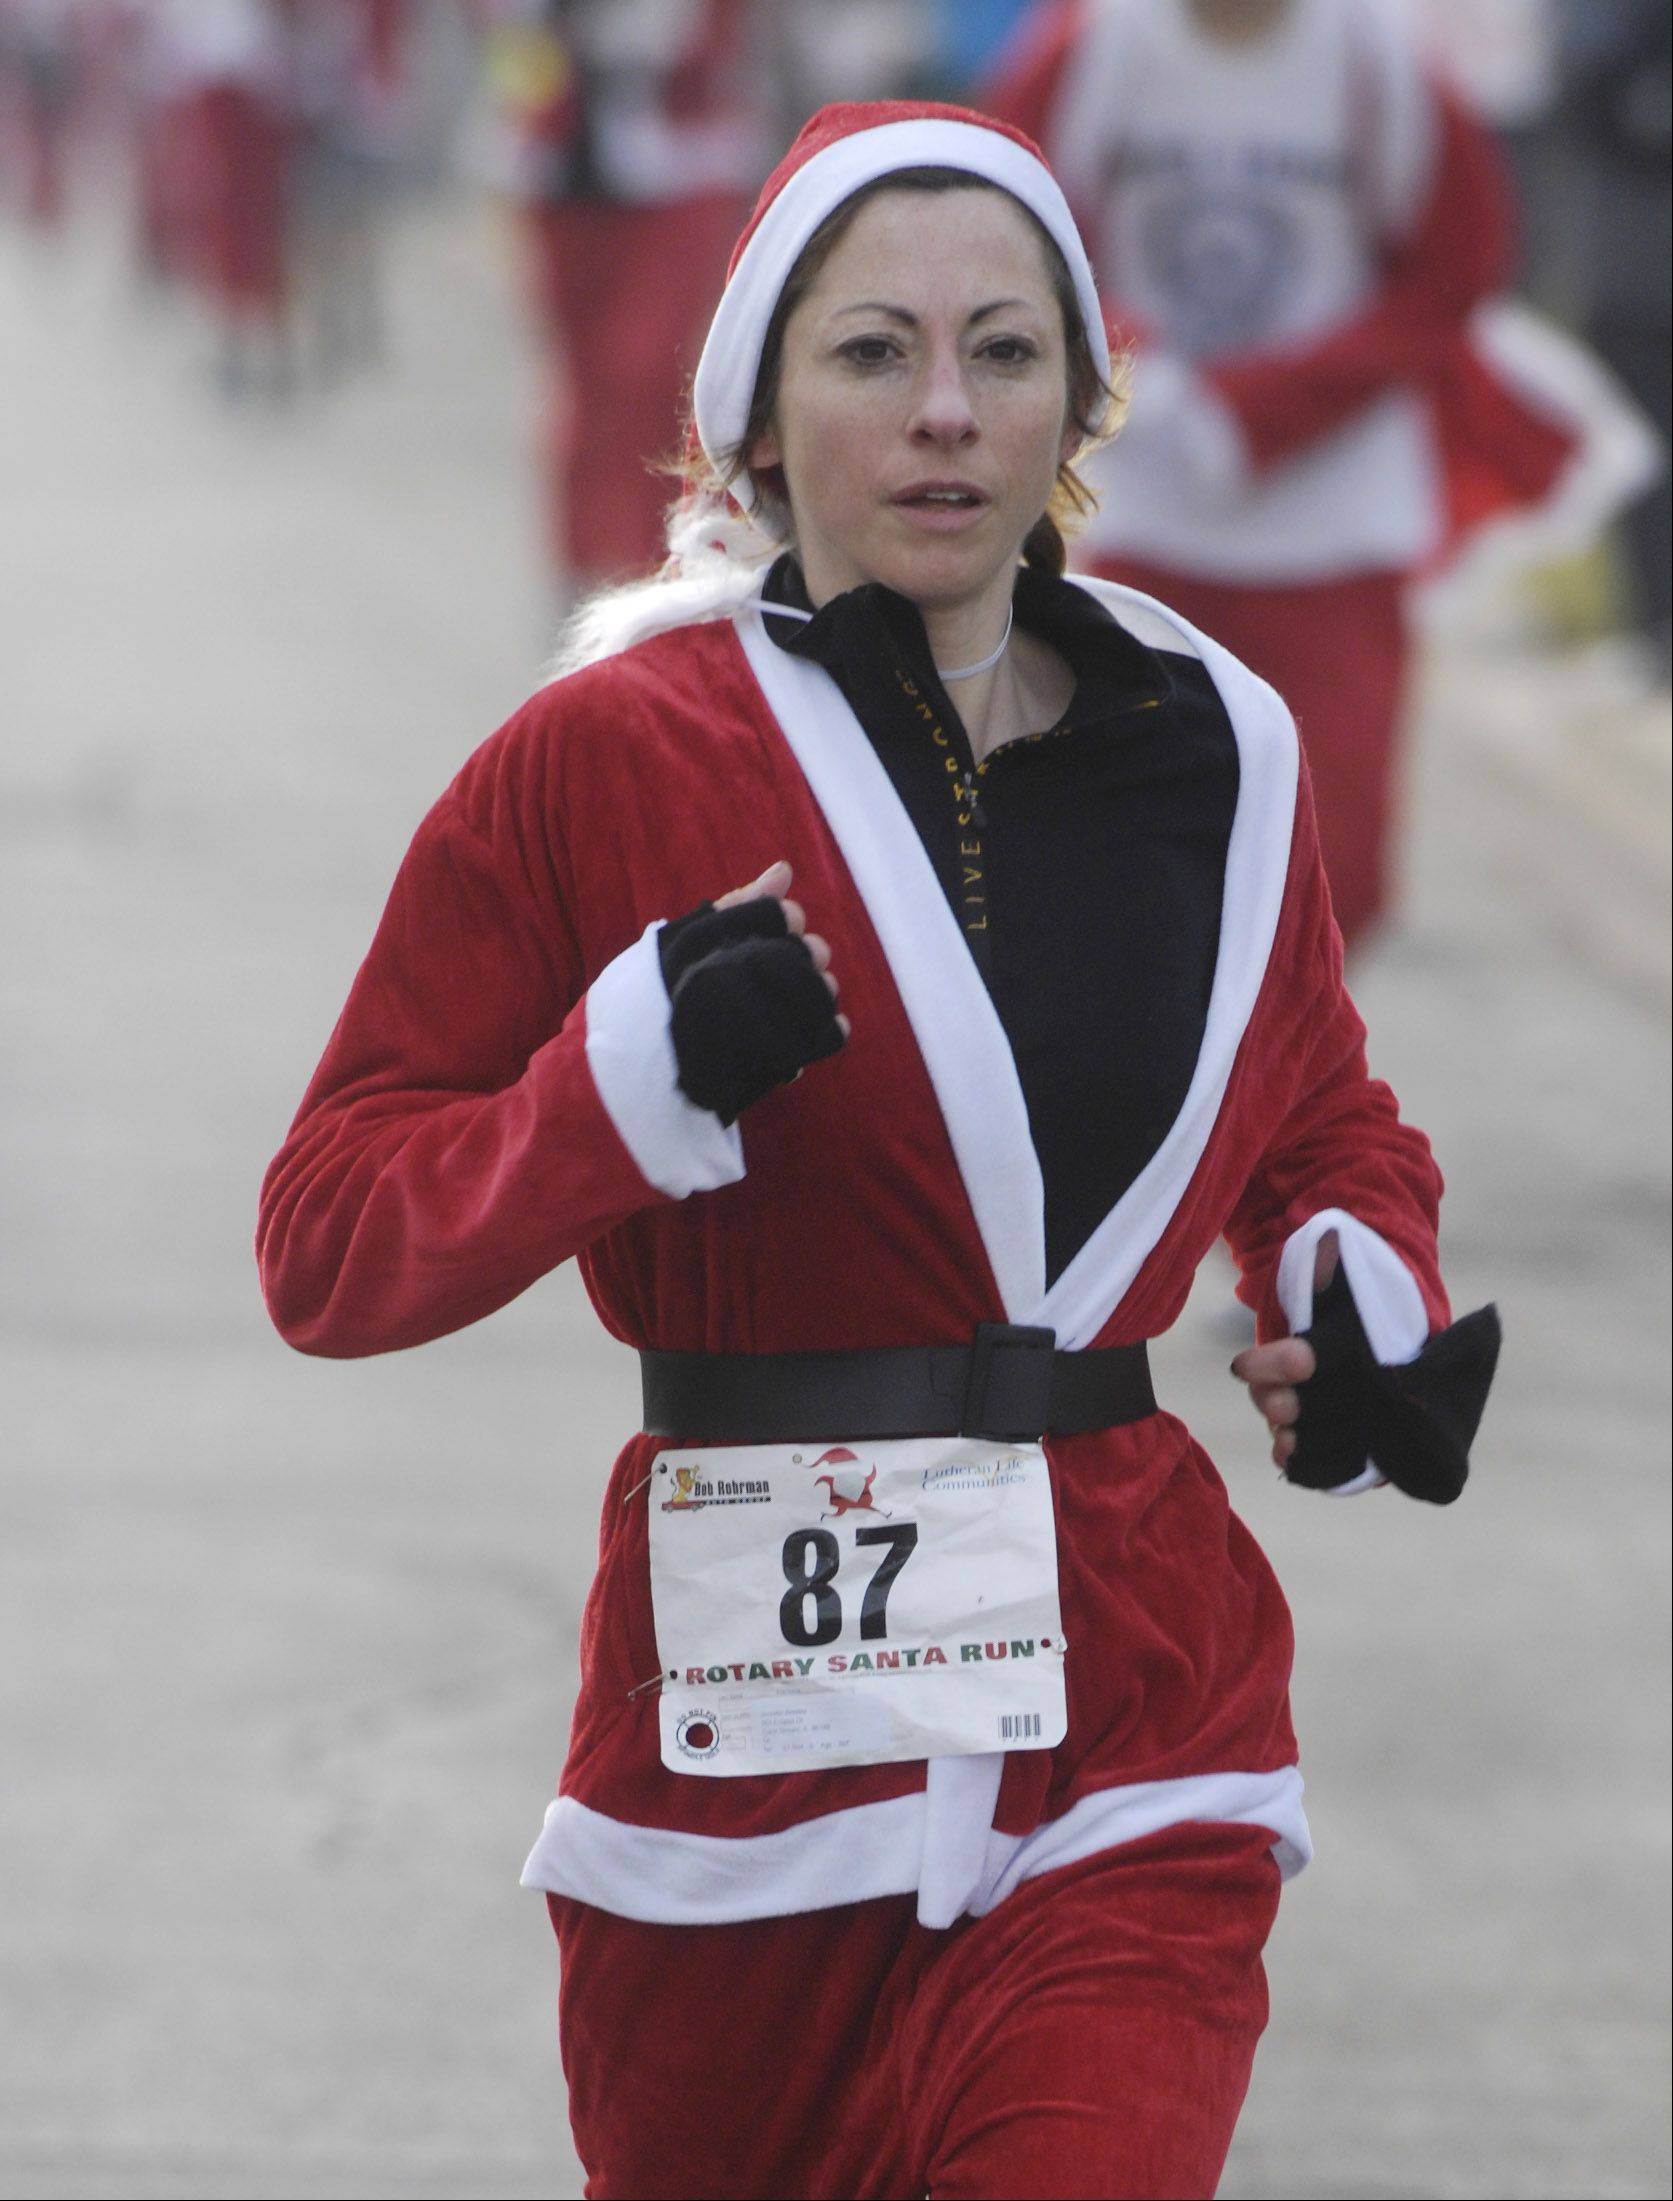 Jennifer Benitez of Carol Stream is the first woman to finish Saturday's 5k Santa Run in Arlington Heights.